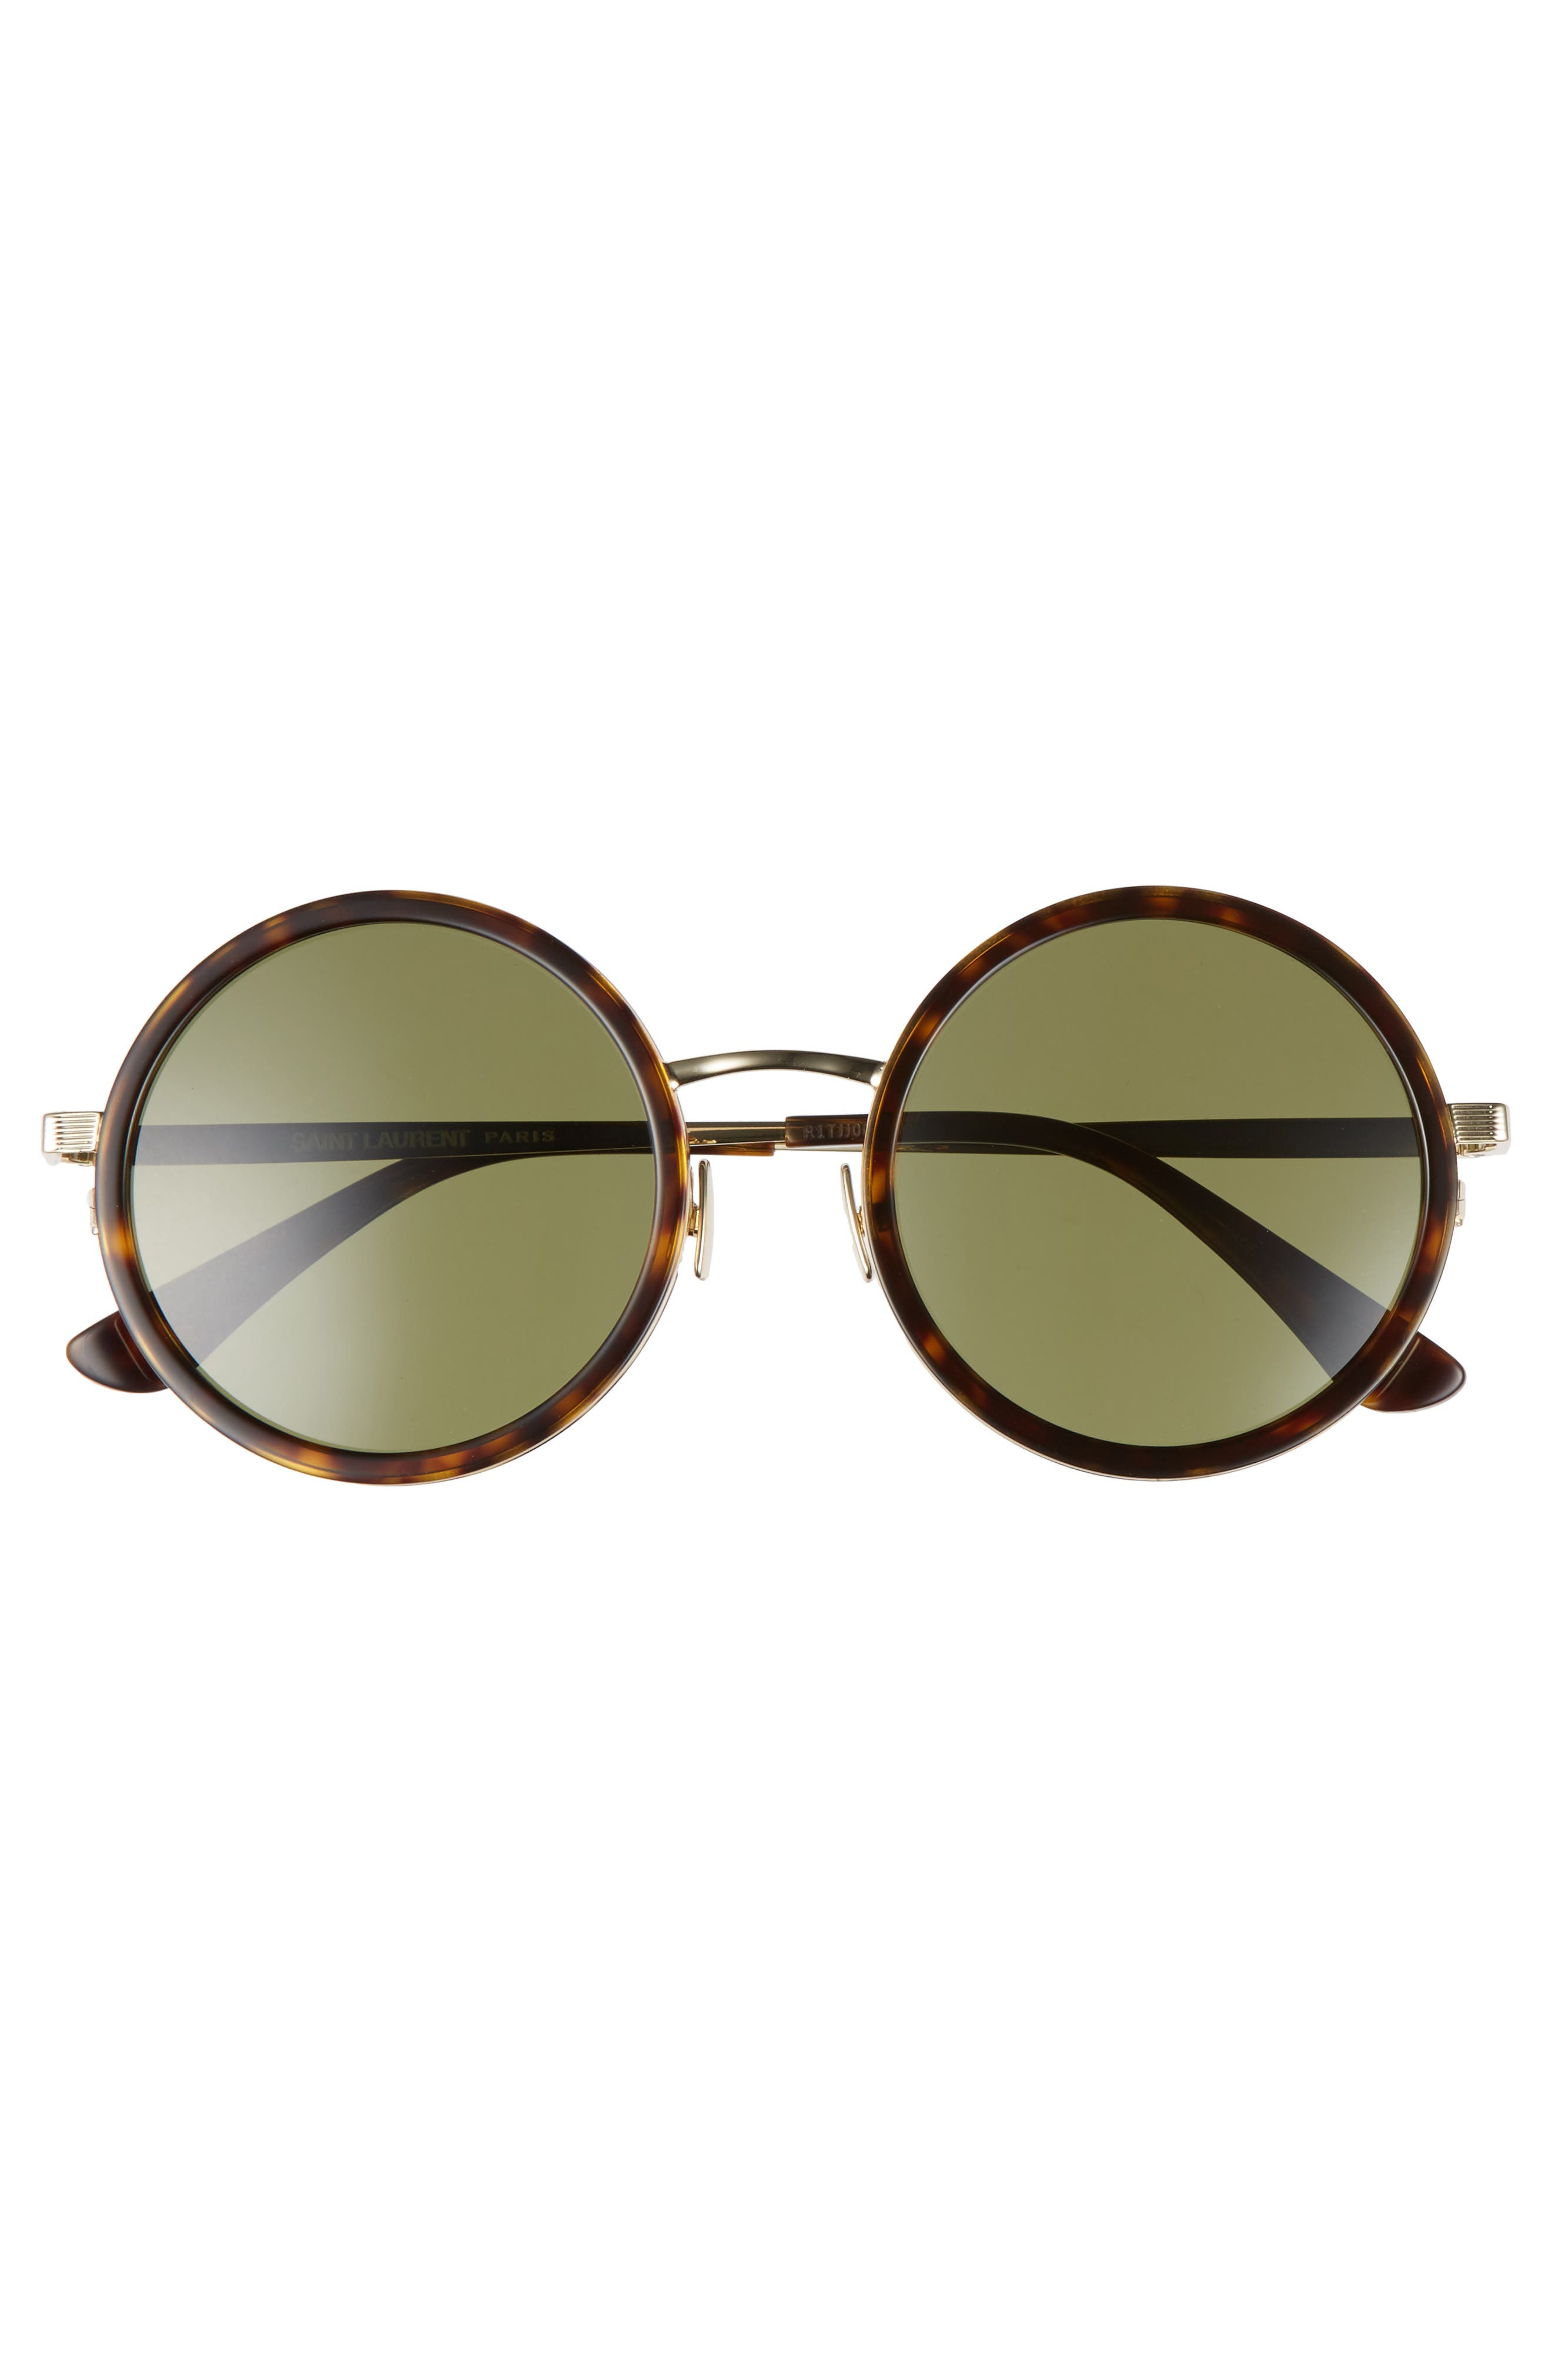 52mm Round Sunglasses,                             Alternate thumbnail 3, color,                             Havana